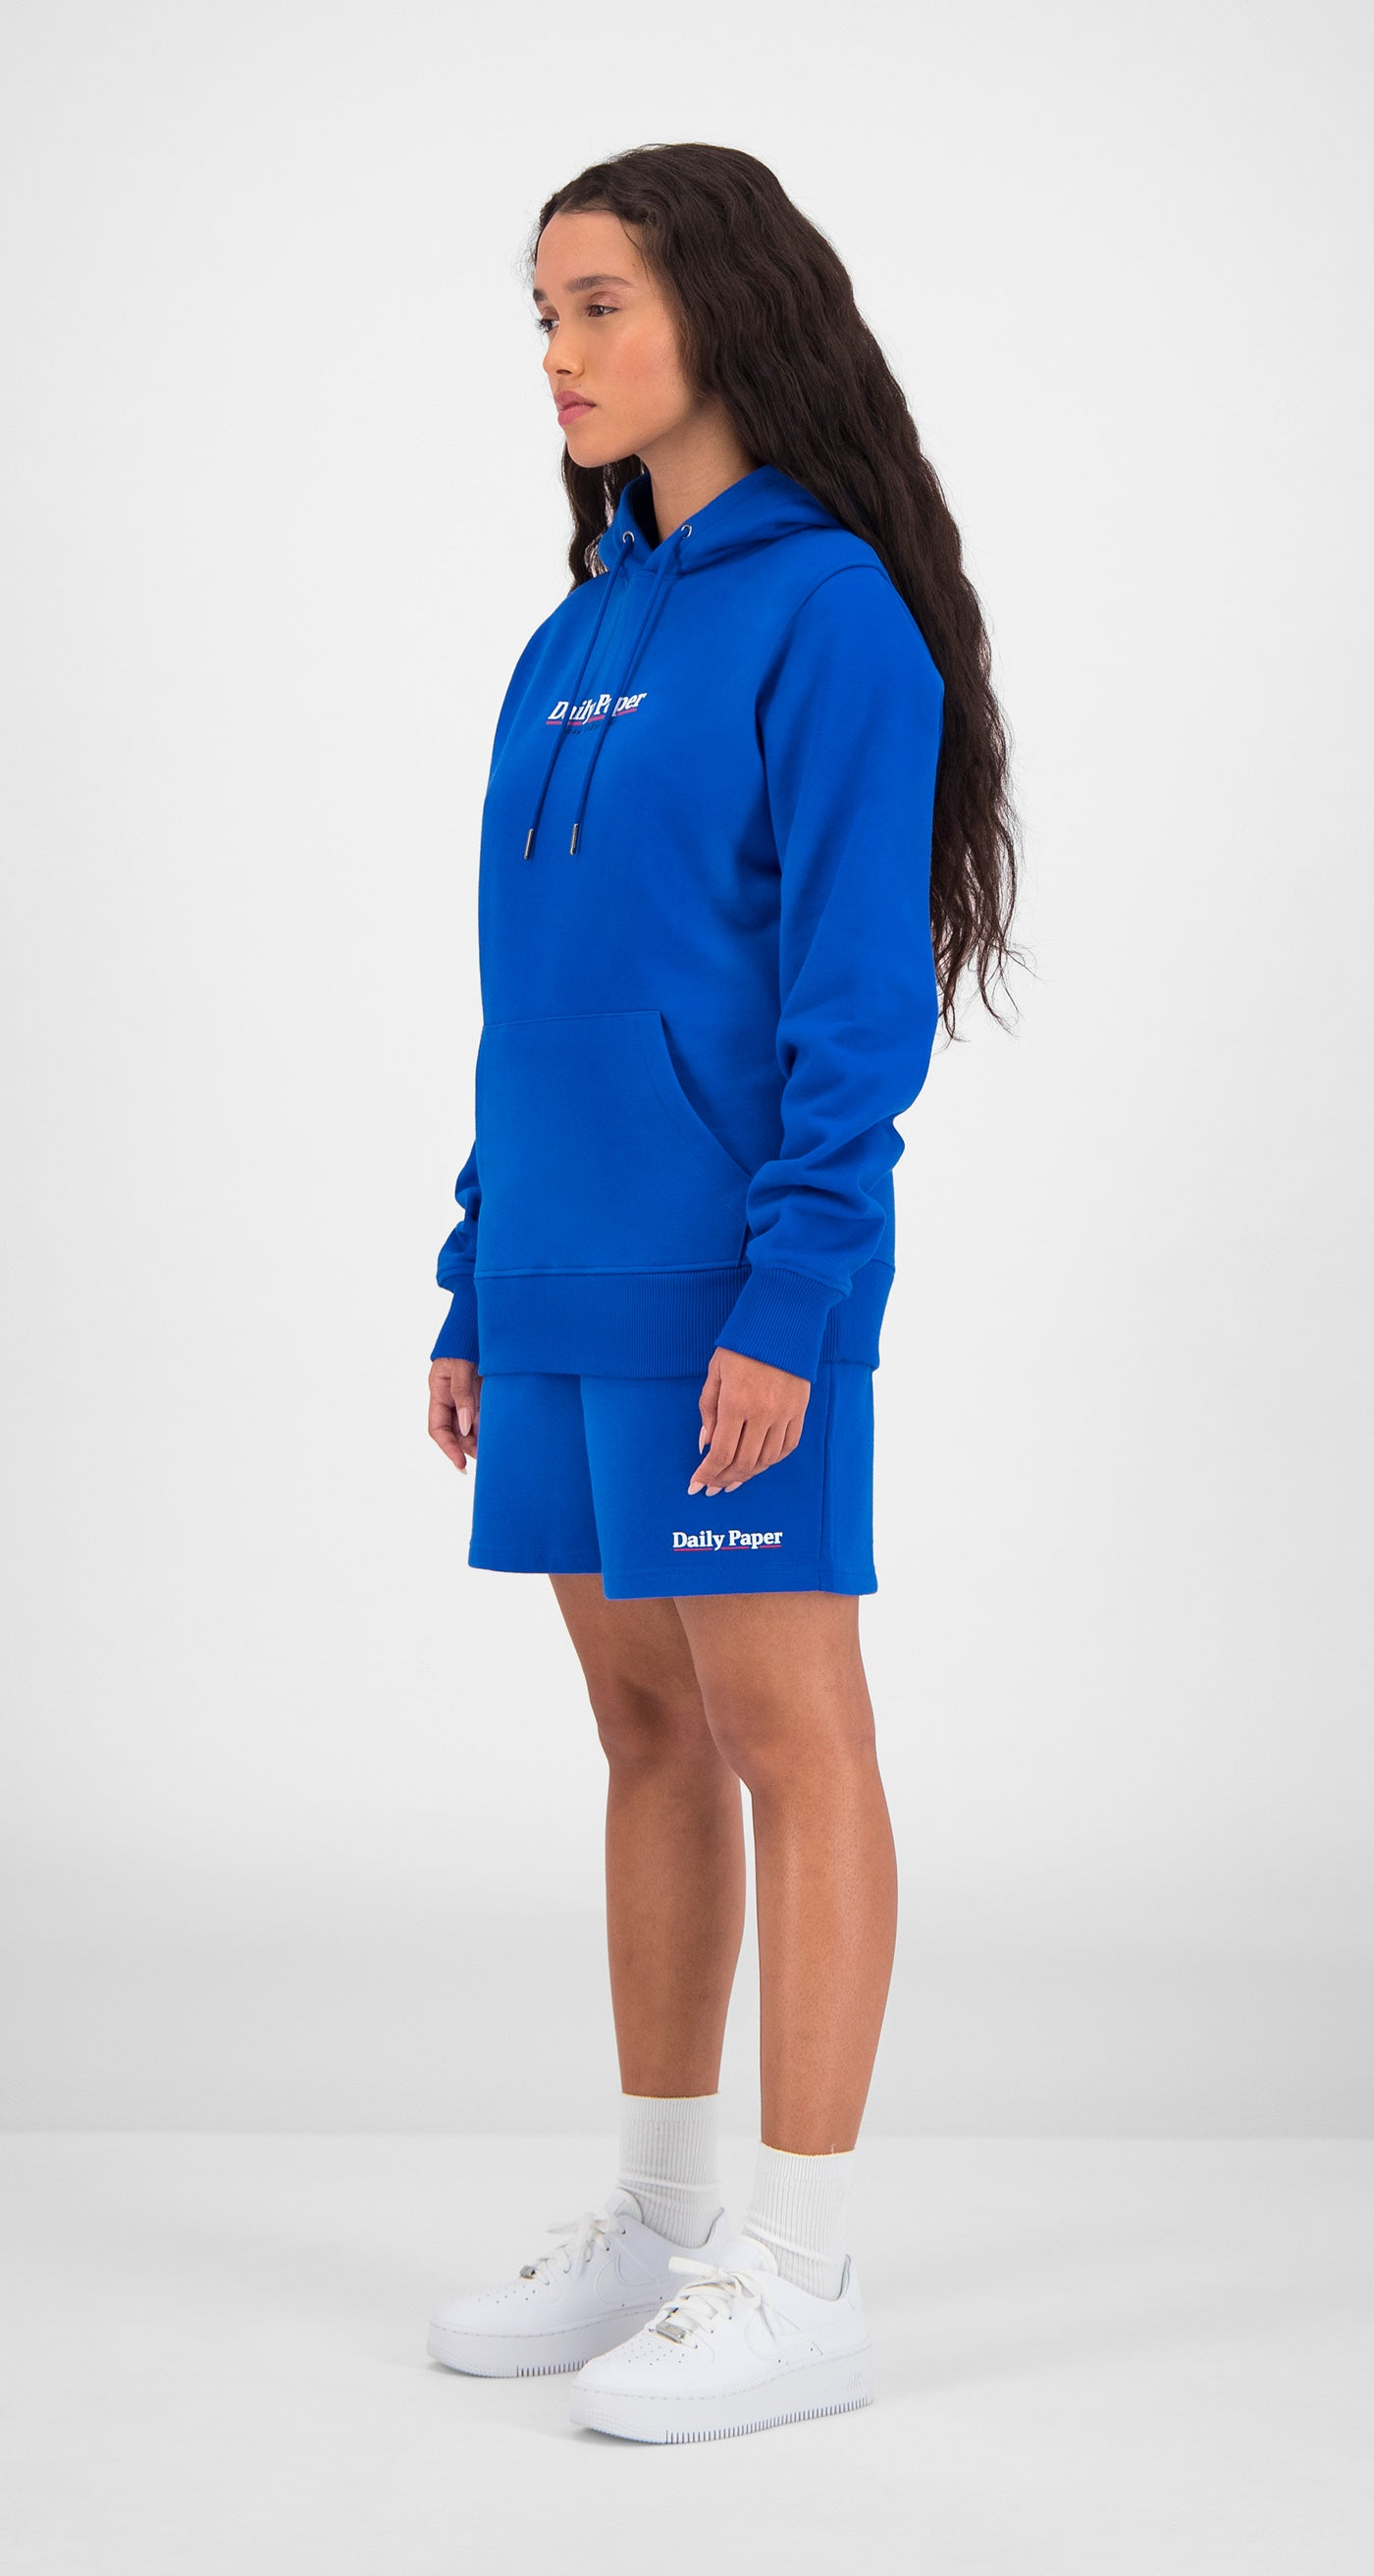 Daily Paper - Blue Essential Hoody Women